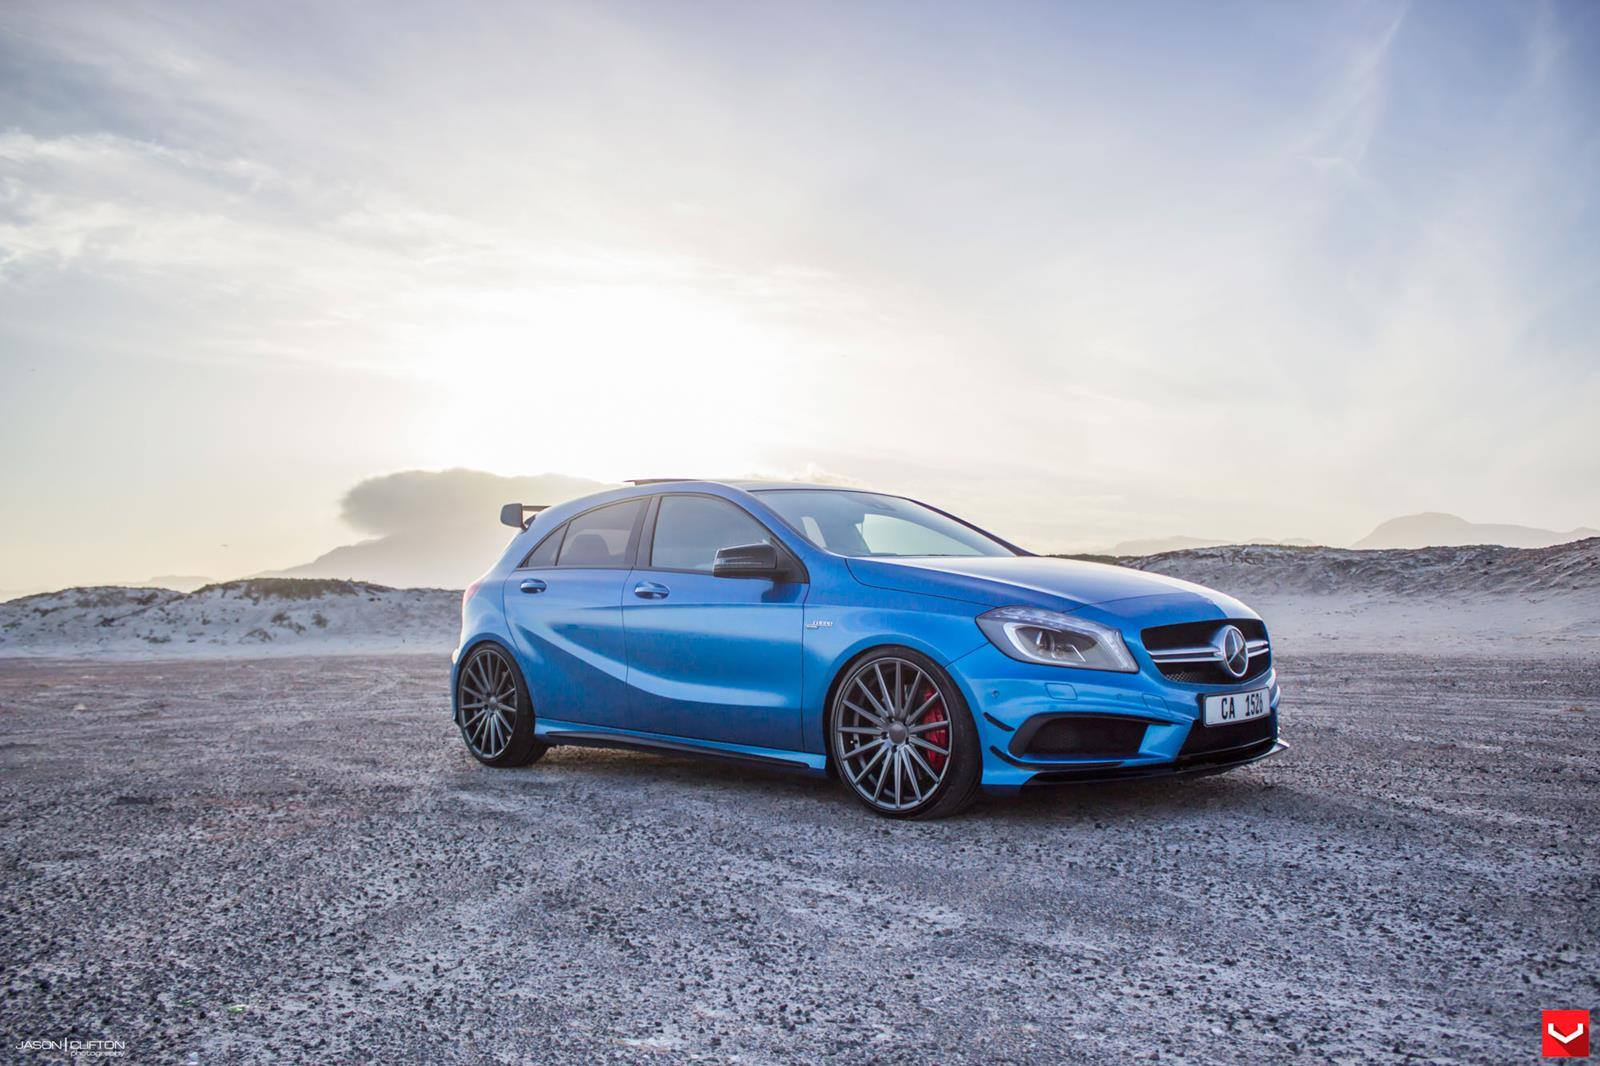 Mercedes A45 Amg On Vossen 20 Inch Wheels Takes A Stroll HD Wallpapers Download free images and photos [musssic.tk]